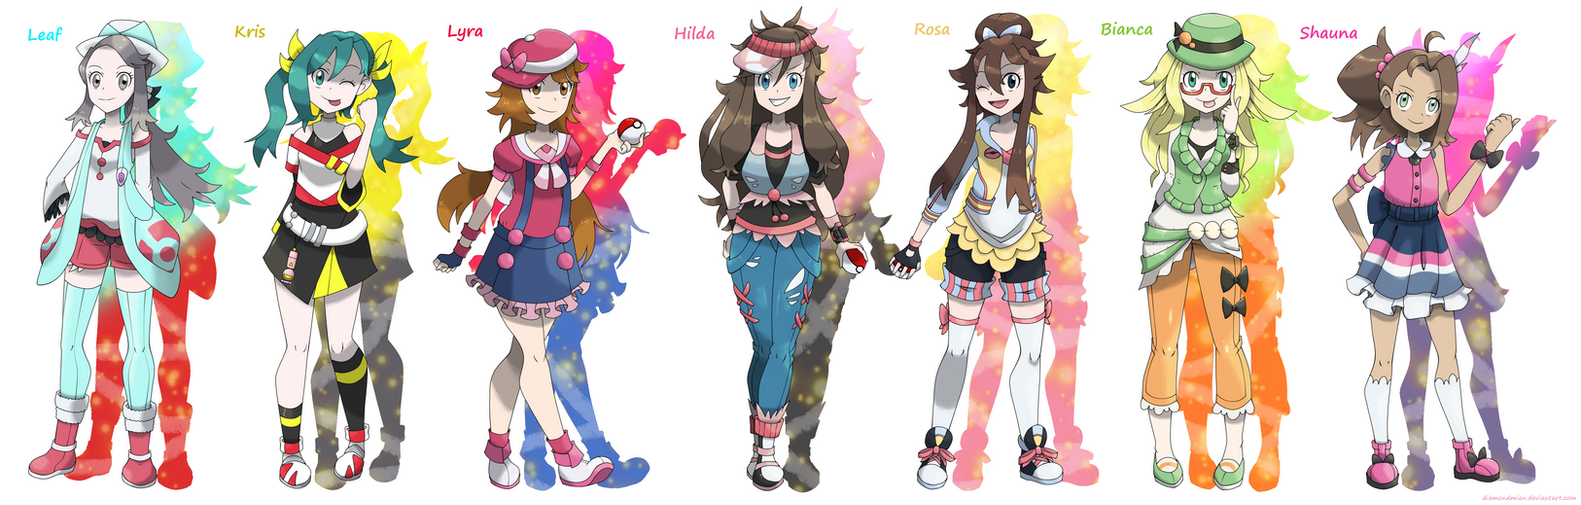 Pokegirl New Outfit Game Heroines and Rivals v.2 by DiamondMian